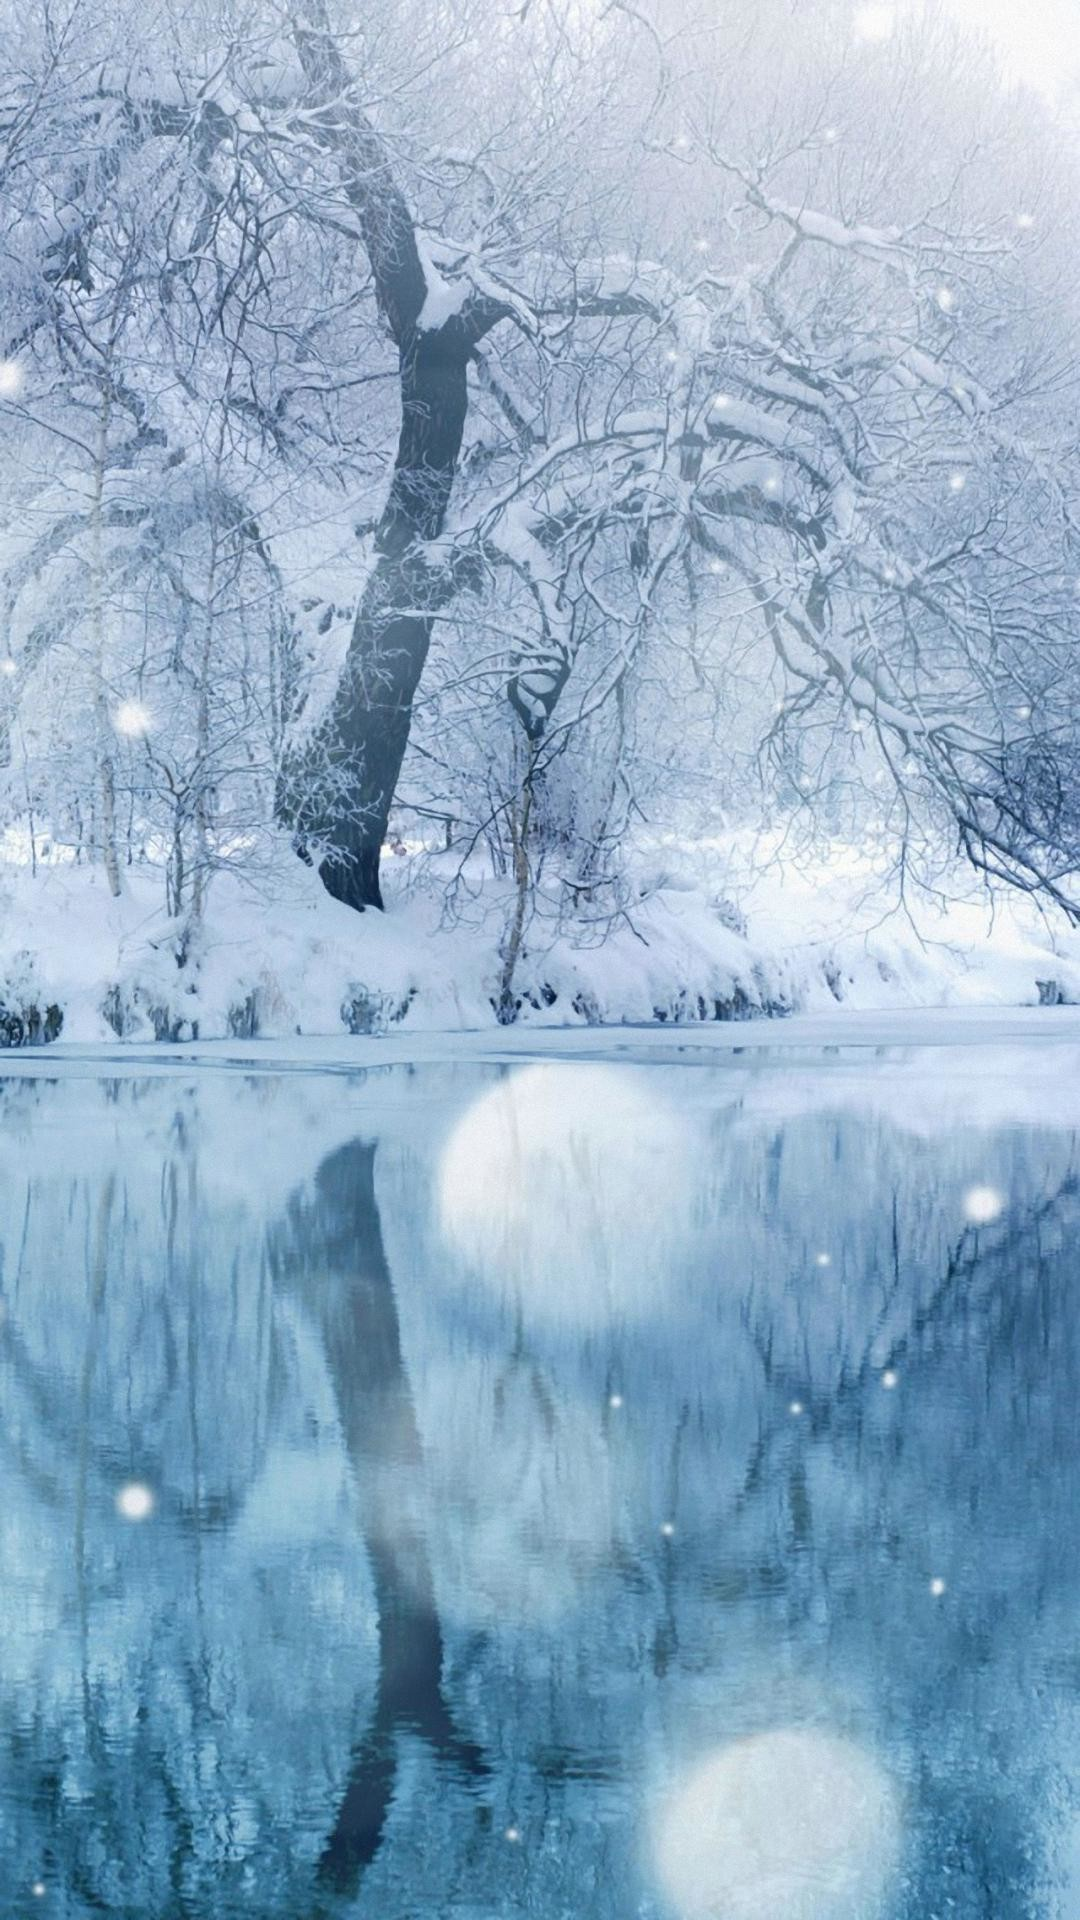 wallpaper.wiki-Winter-Wallpaper-for-Iphone-Free-Download-